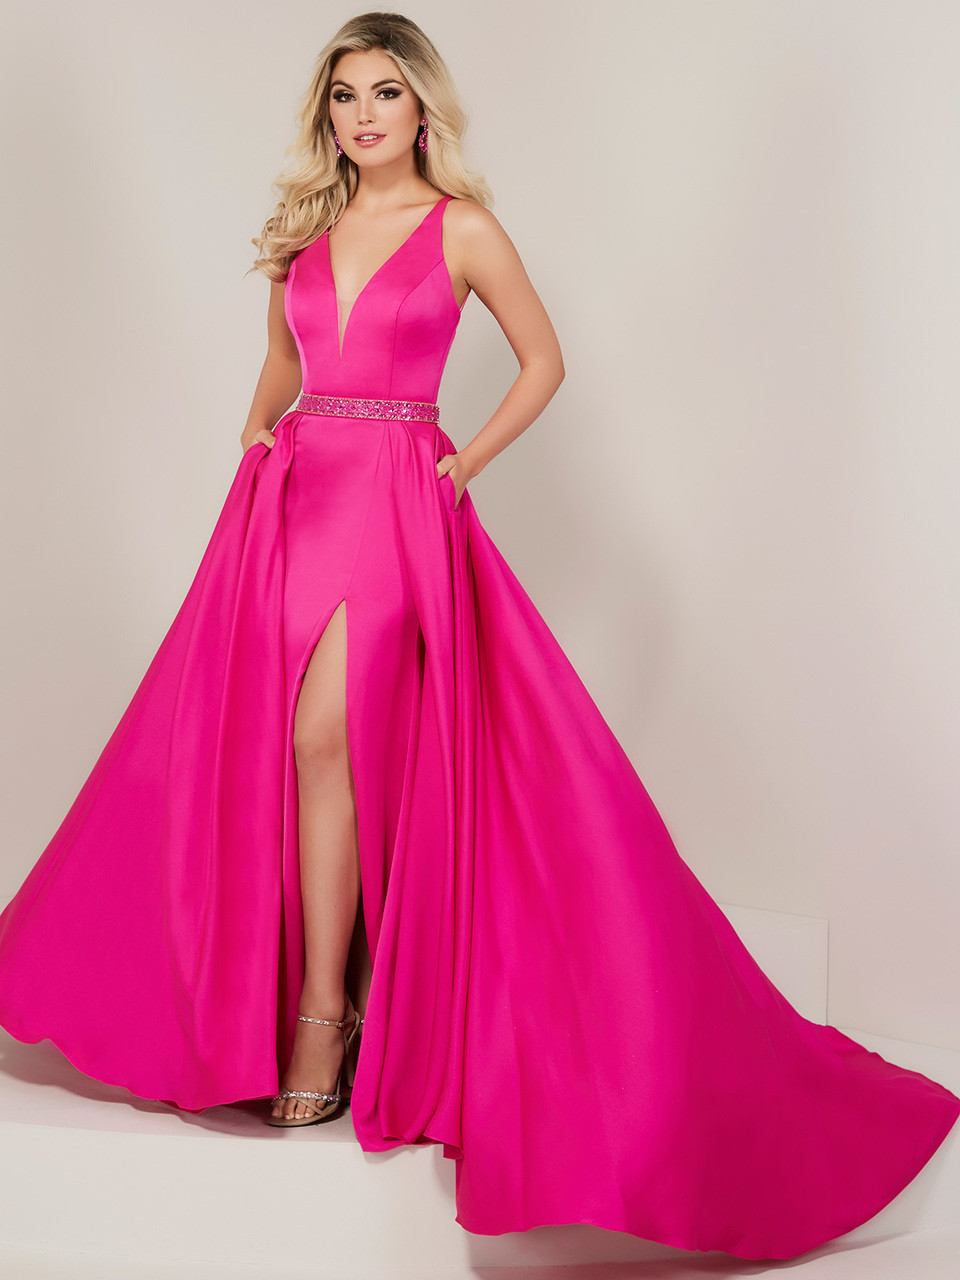 b325a4a6c1 V-neck Prom Dress Tiffany Designs 16328